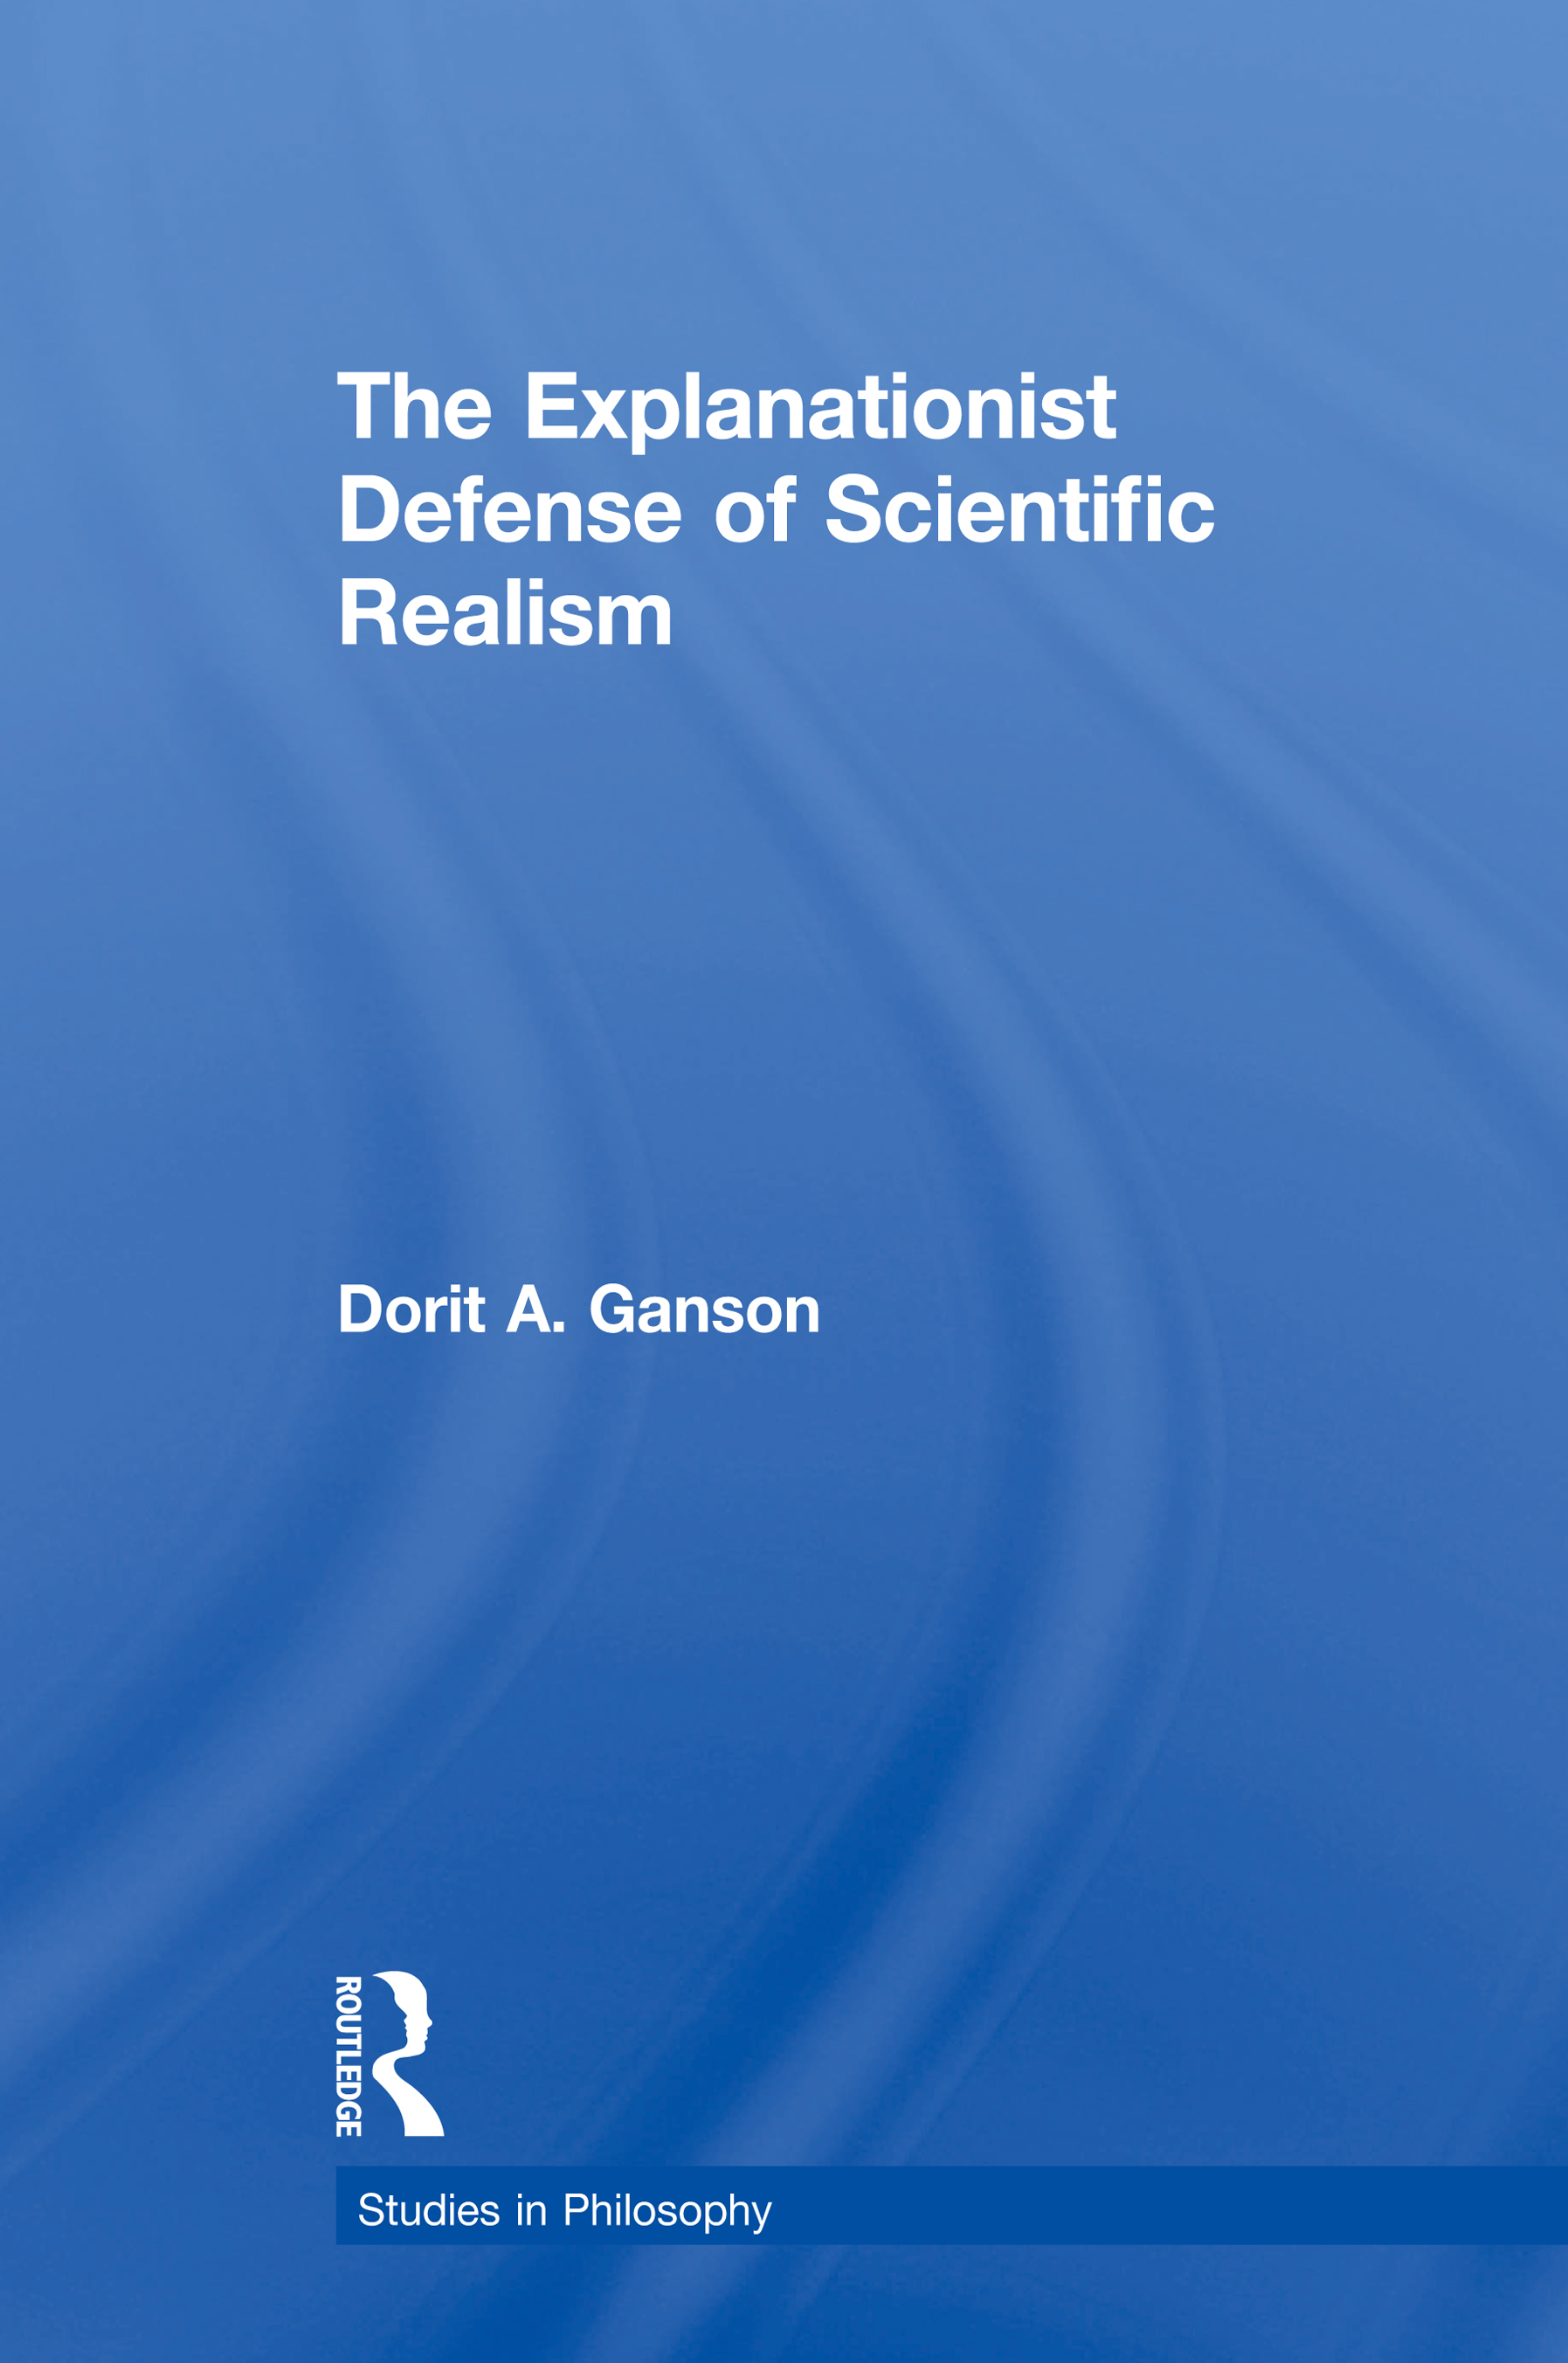 The Explanationist Defense of Scientific Realism book cover